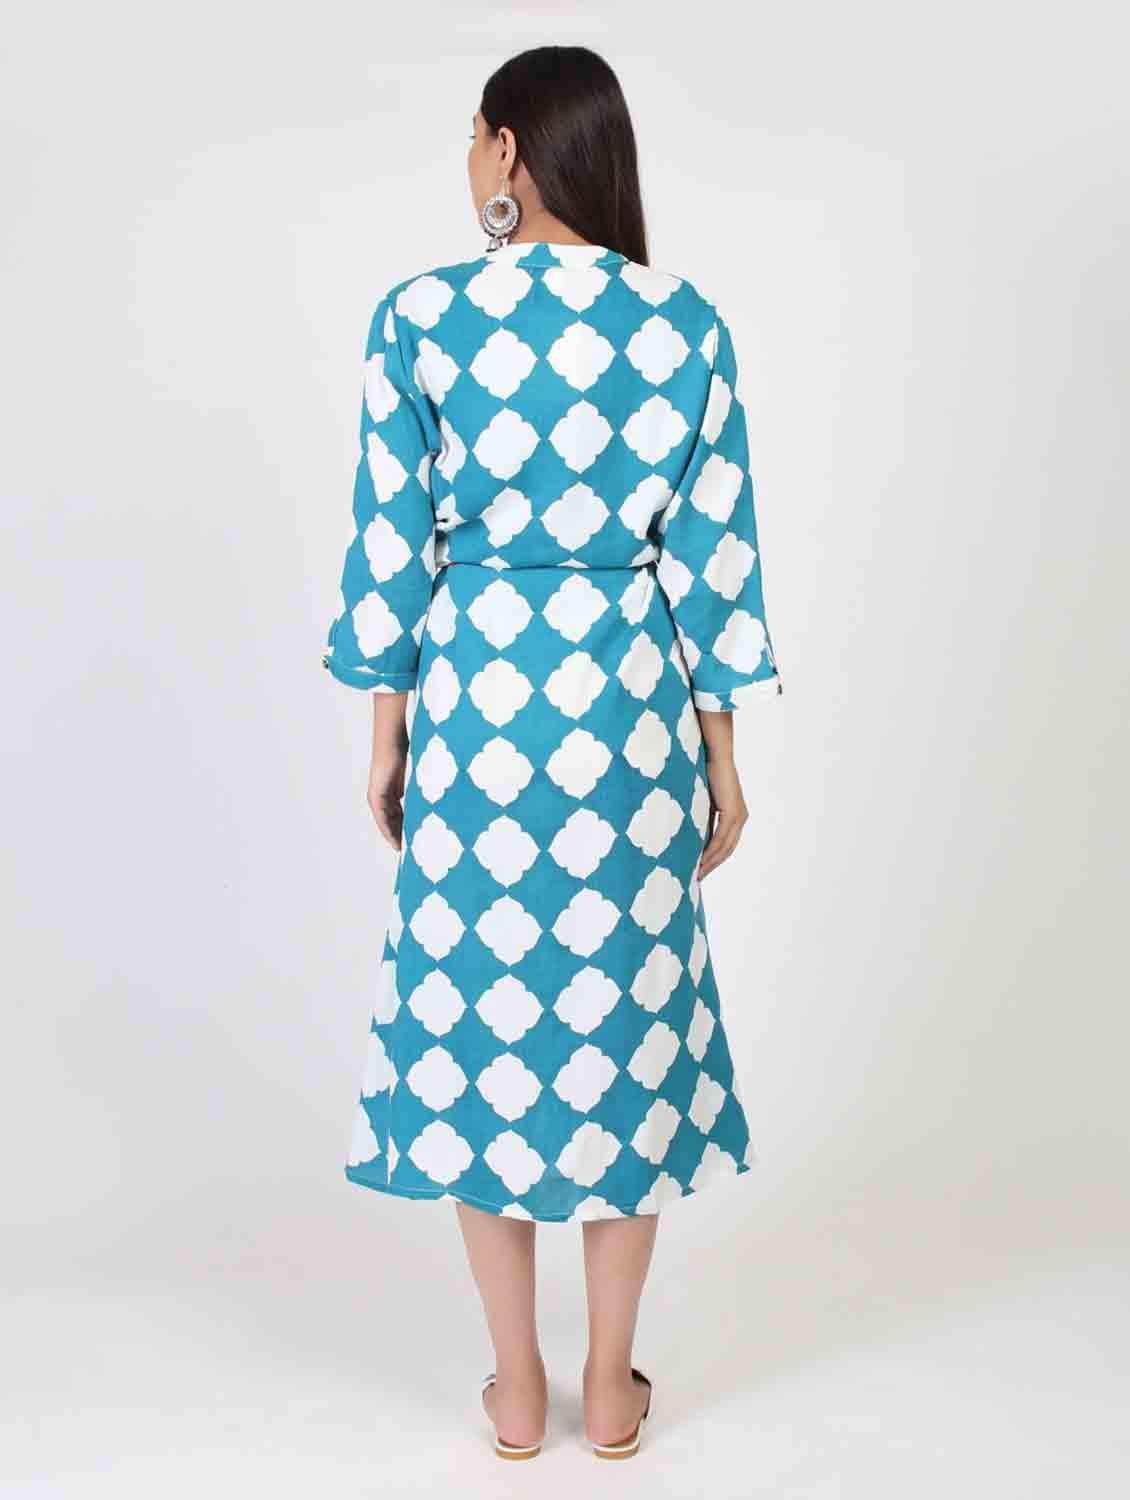 SKYLY BLOCK DRESS